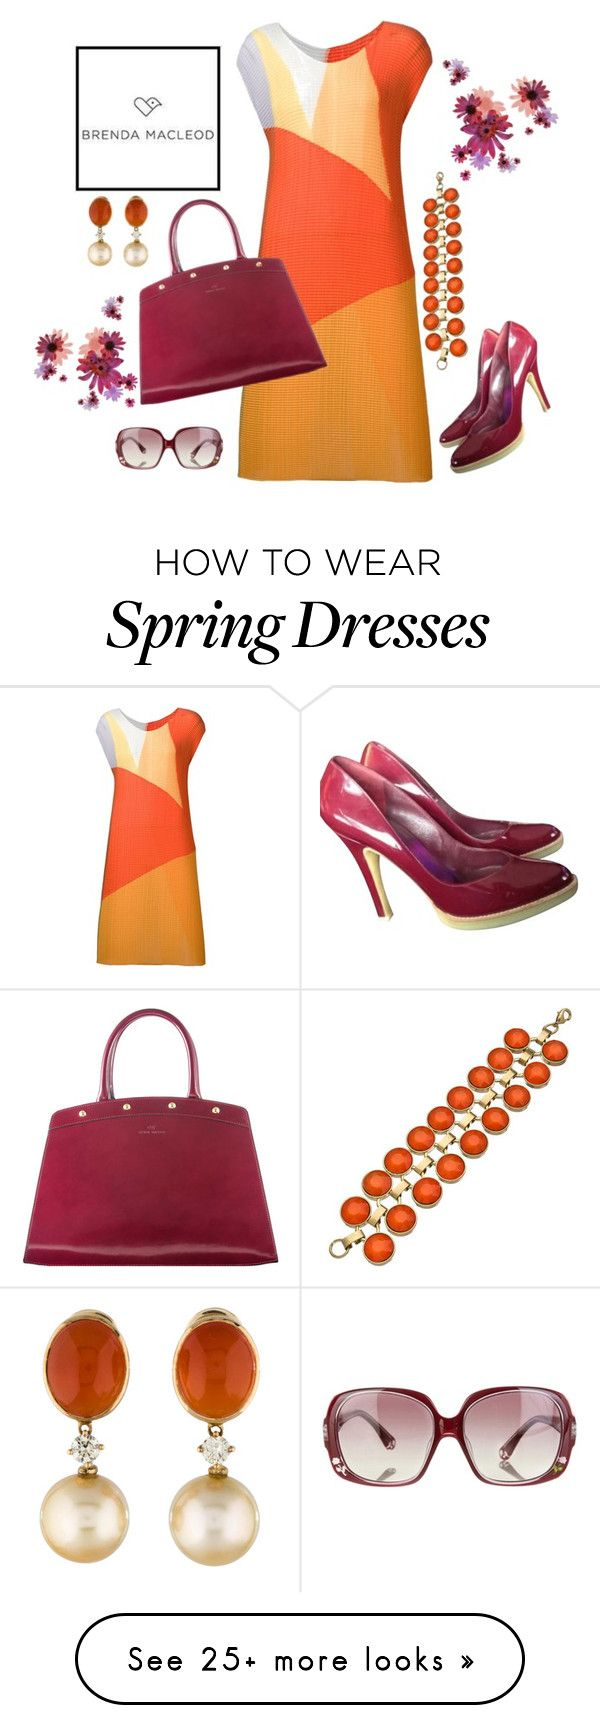 """spring with BRENDA MACLEOD"" by kimzarad1 on Polyvore featuring Issey Miyake, Gucci, Danielle Stevens, Fendi, women's clothing, women, female, woman, misses and juniors"